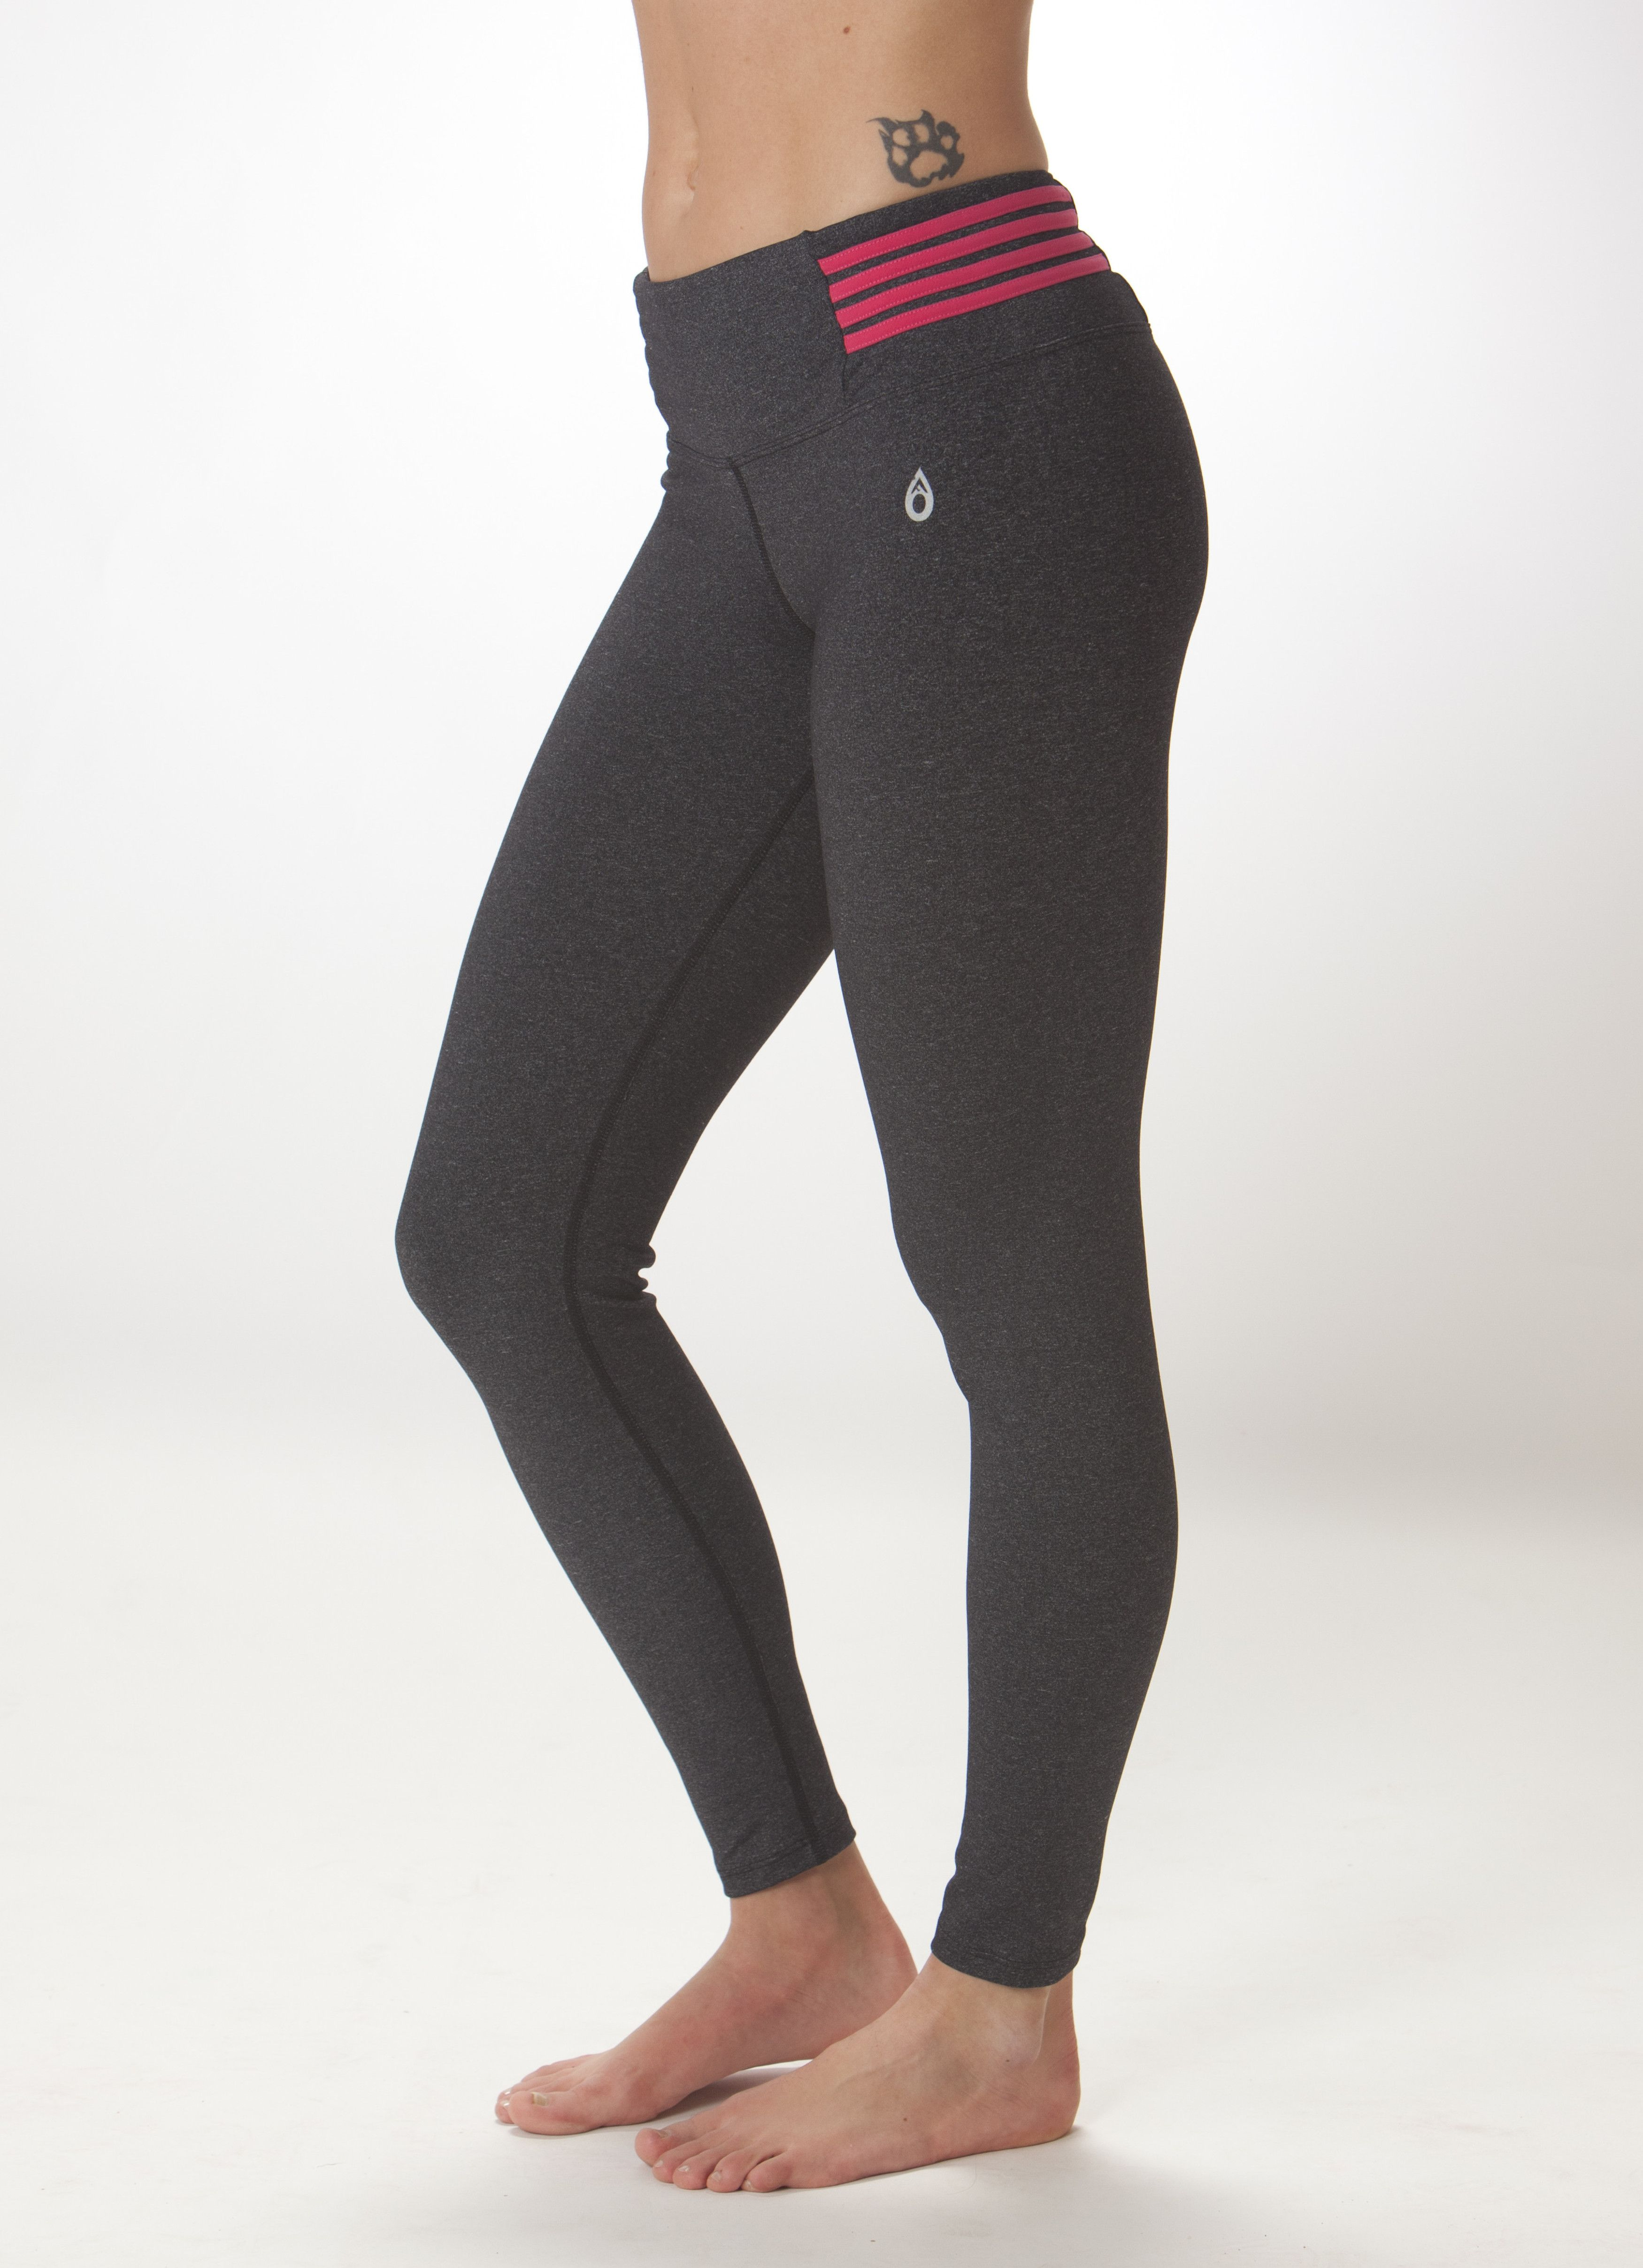 c4b2ac504159 Dona Jo Quattro women s active wear Leggings in Grey Pink Great for  running